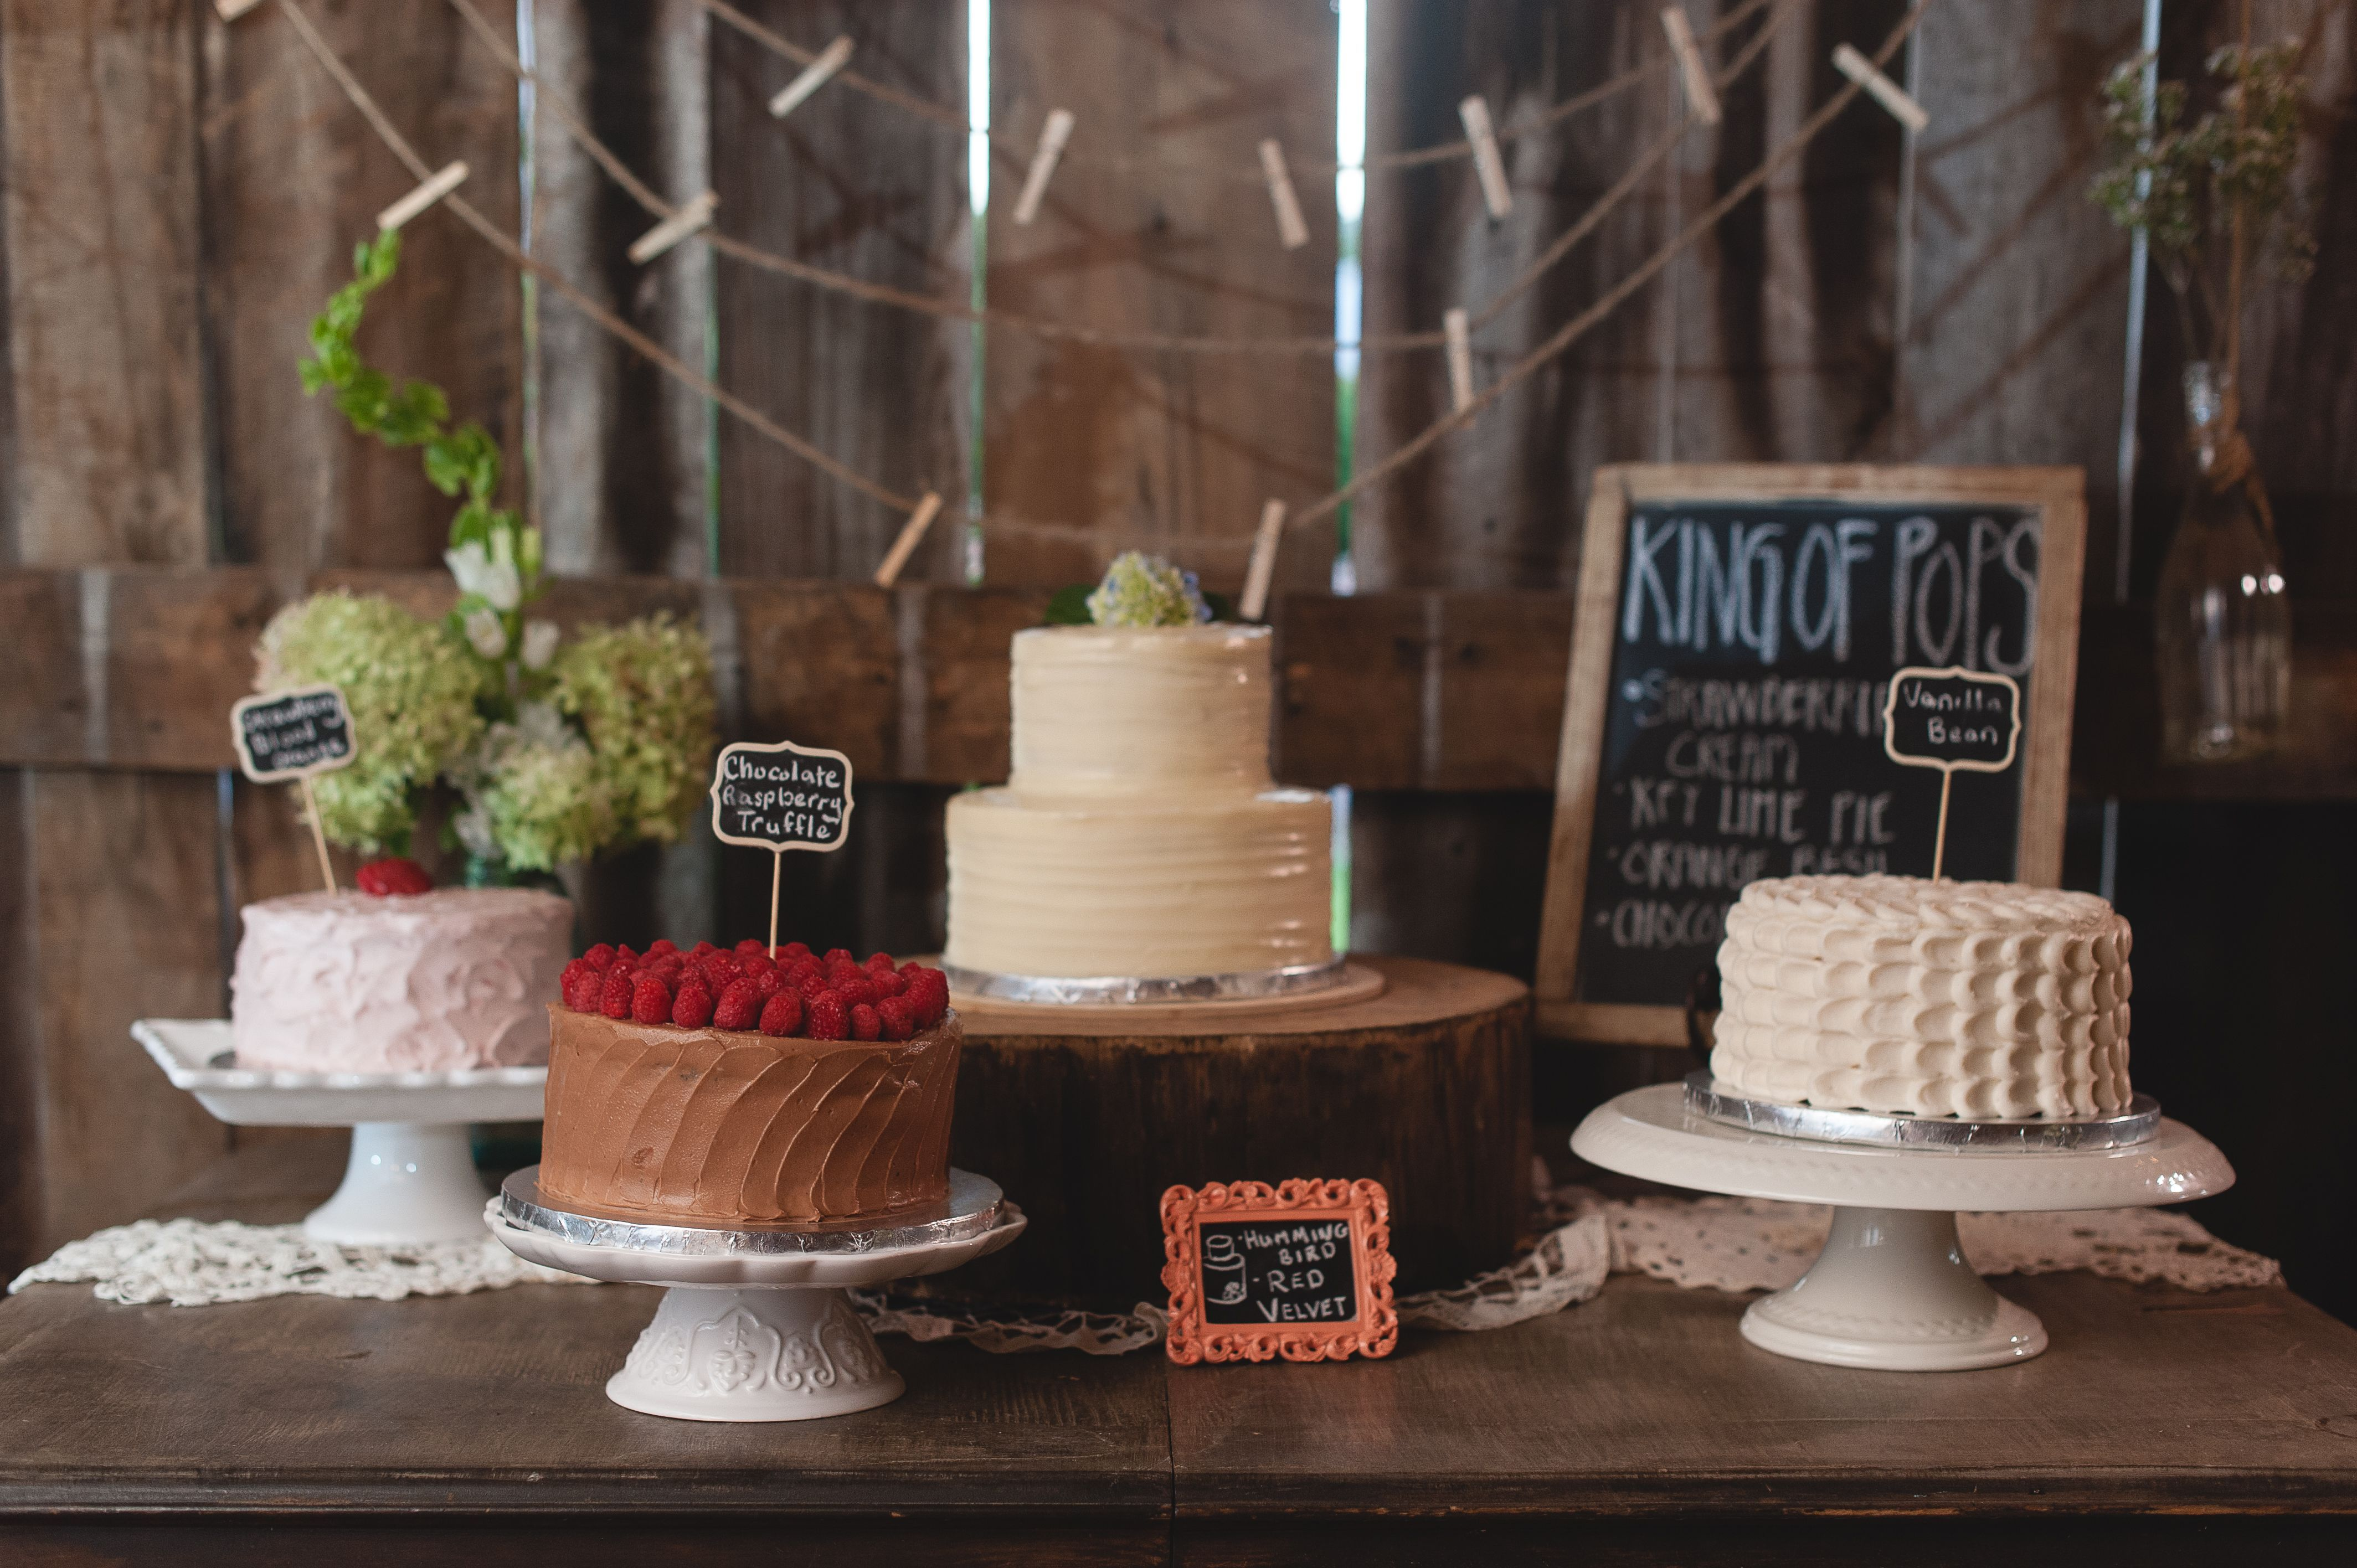 Need Wedding Ideas? Check Out This Homemade Cake Dessert